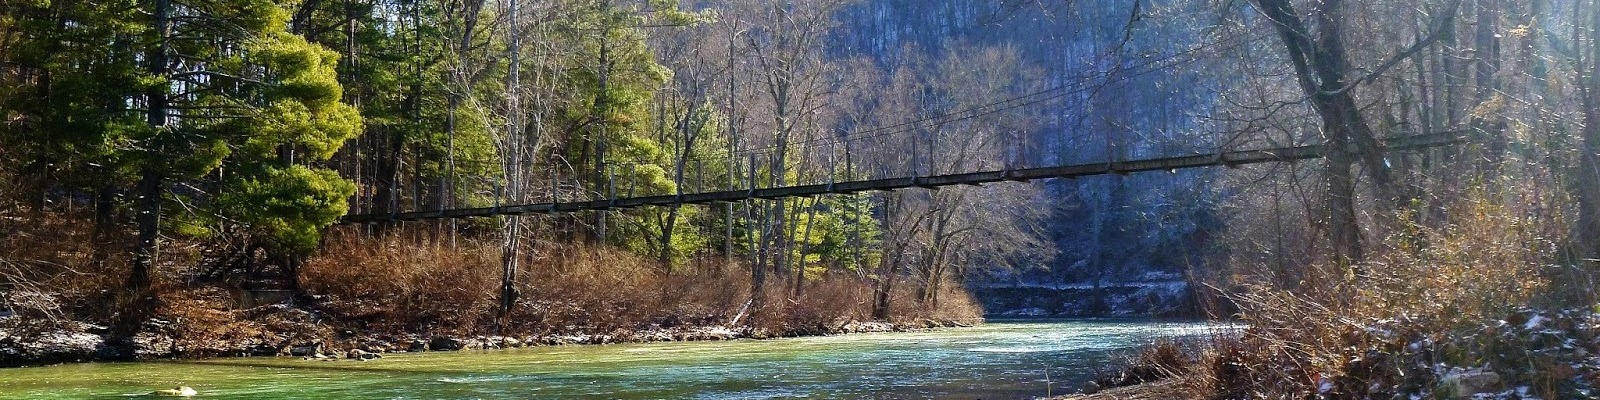 Swinging Bridge, Rockbridge County